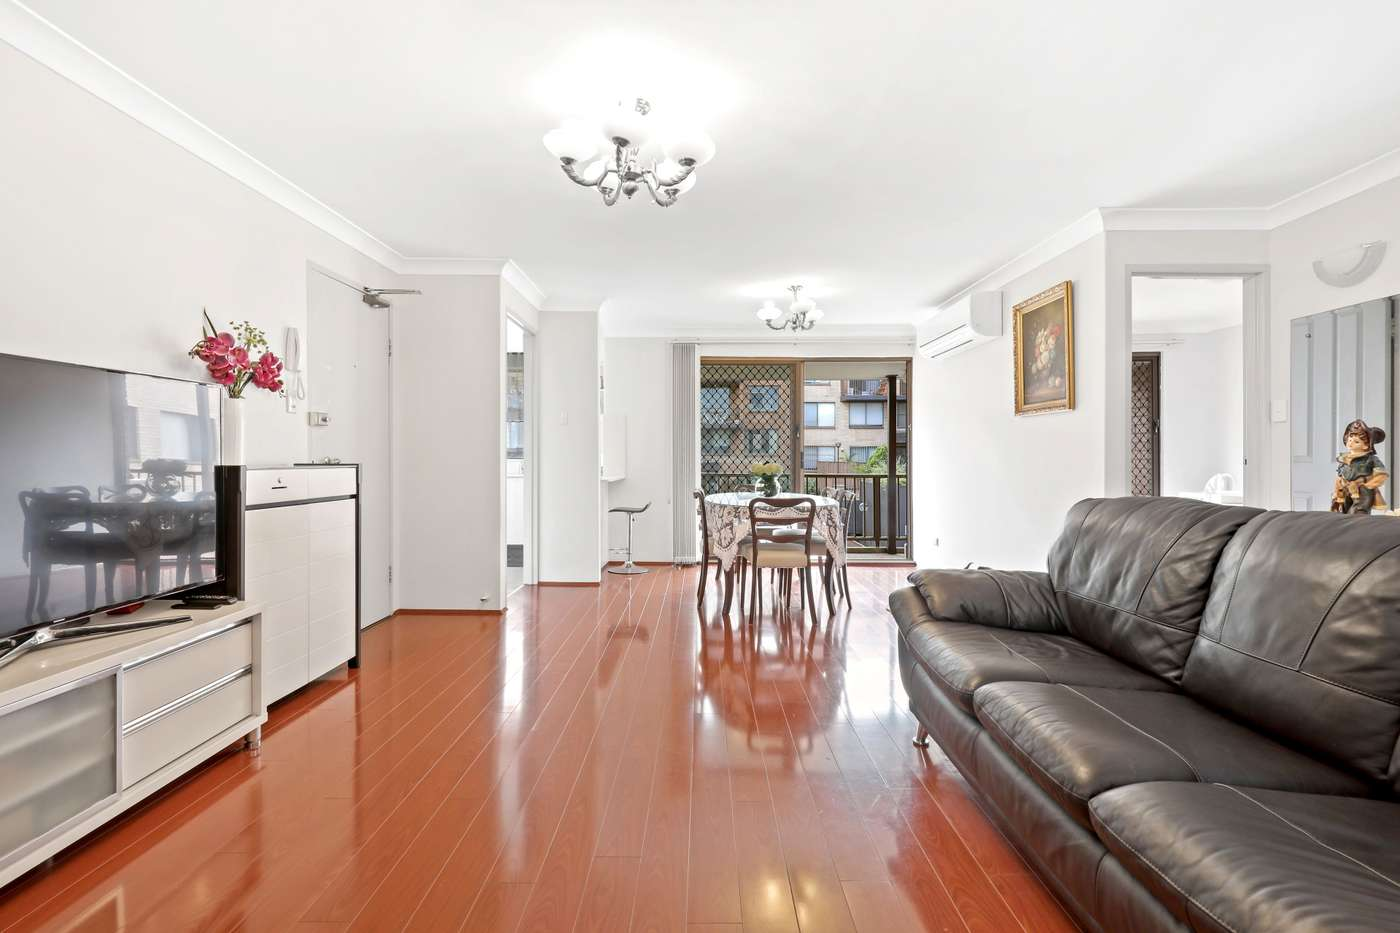 Main view of Homely apartment listing, 65/500 Elizabeth Street, Surry Hills, NSW 2010